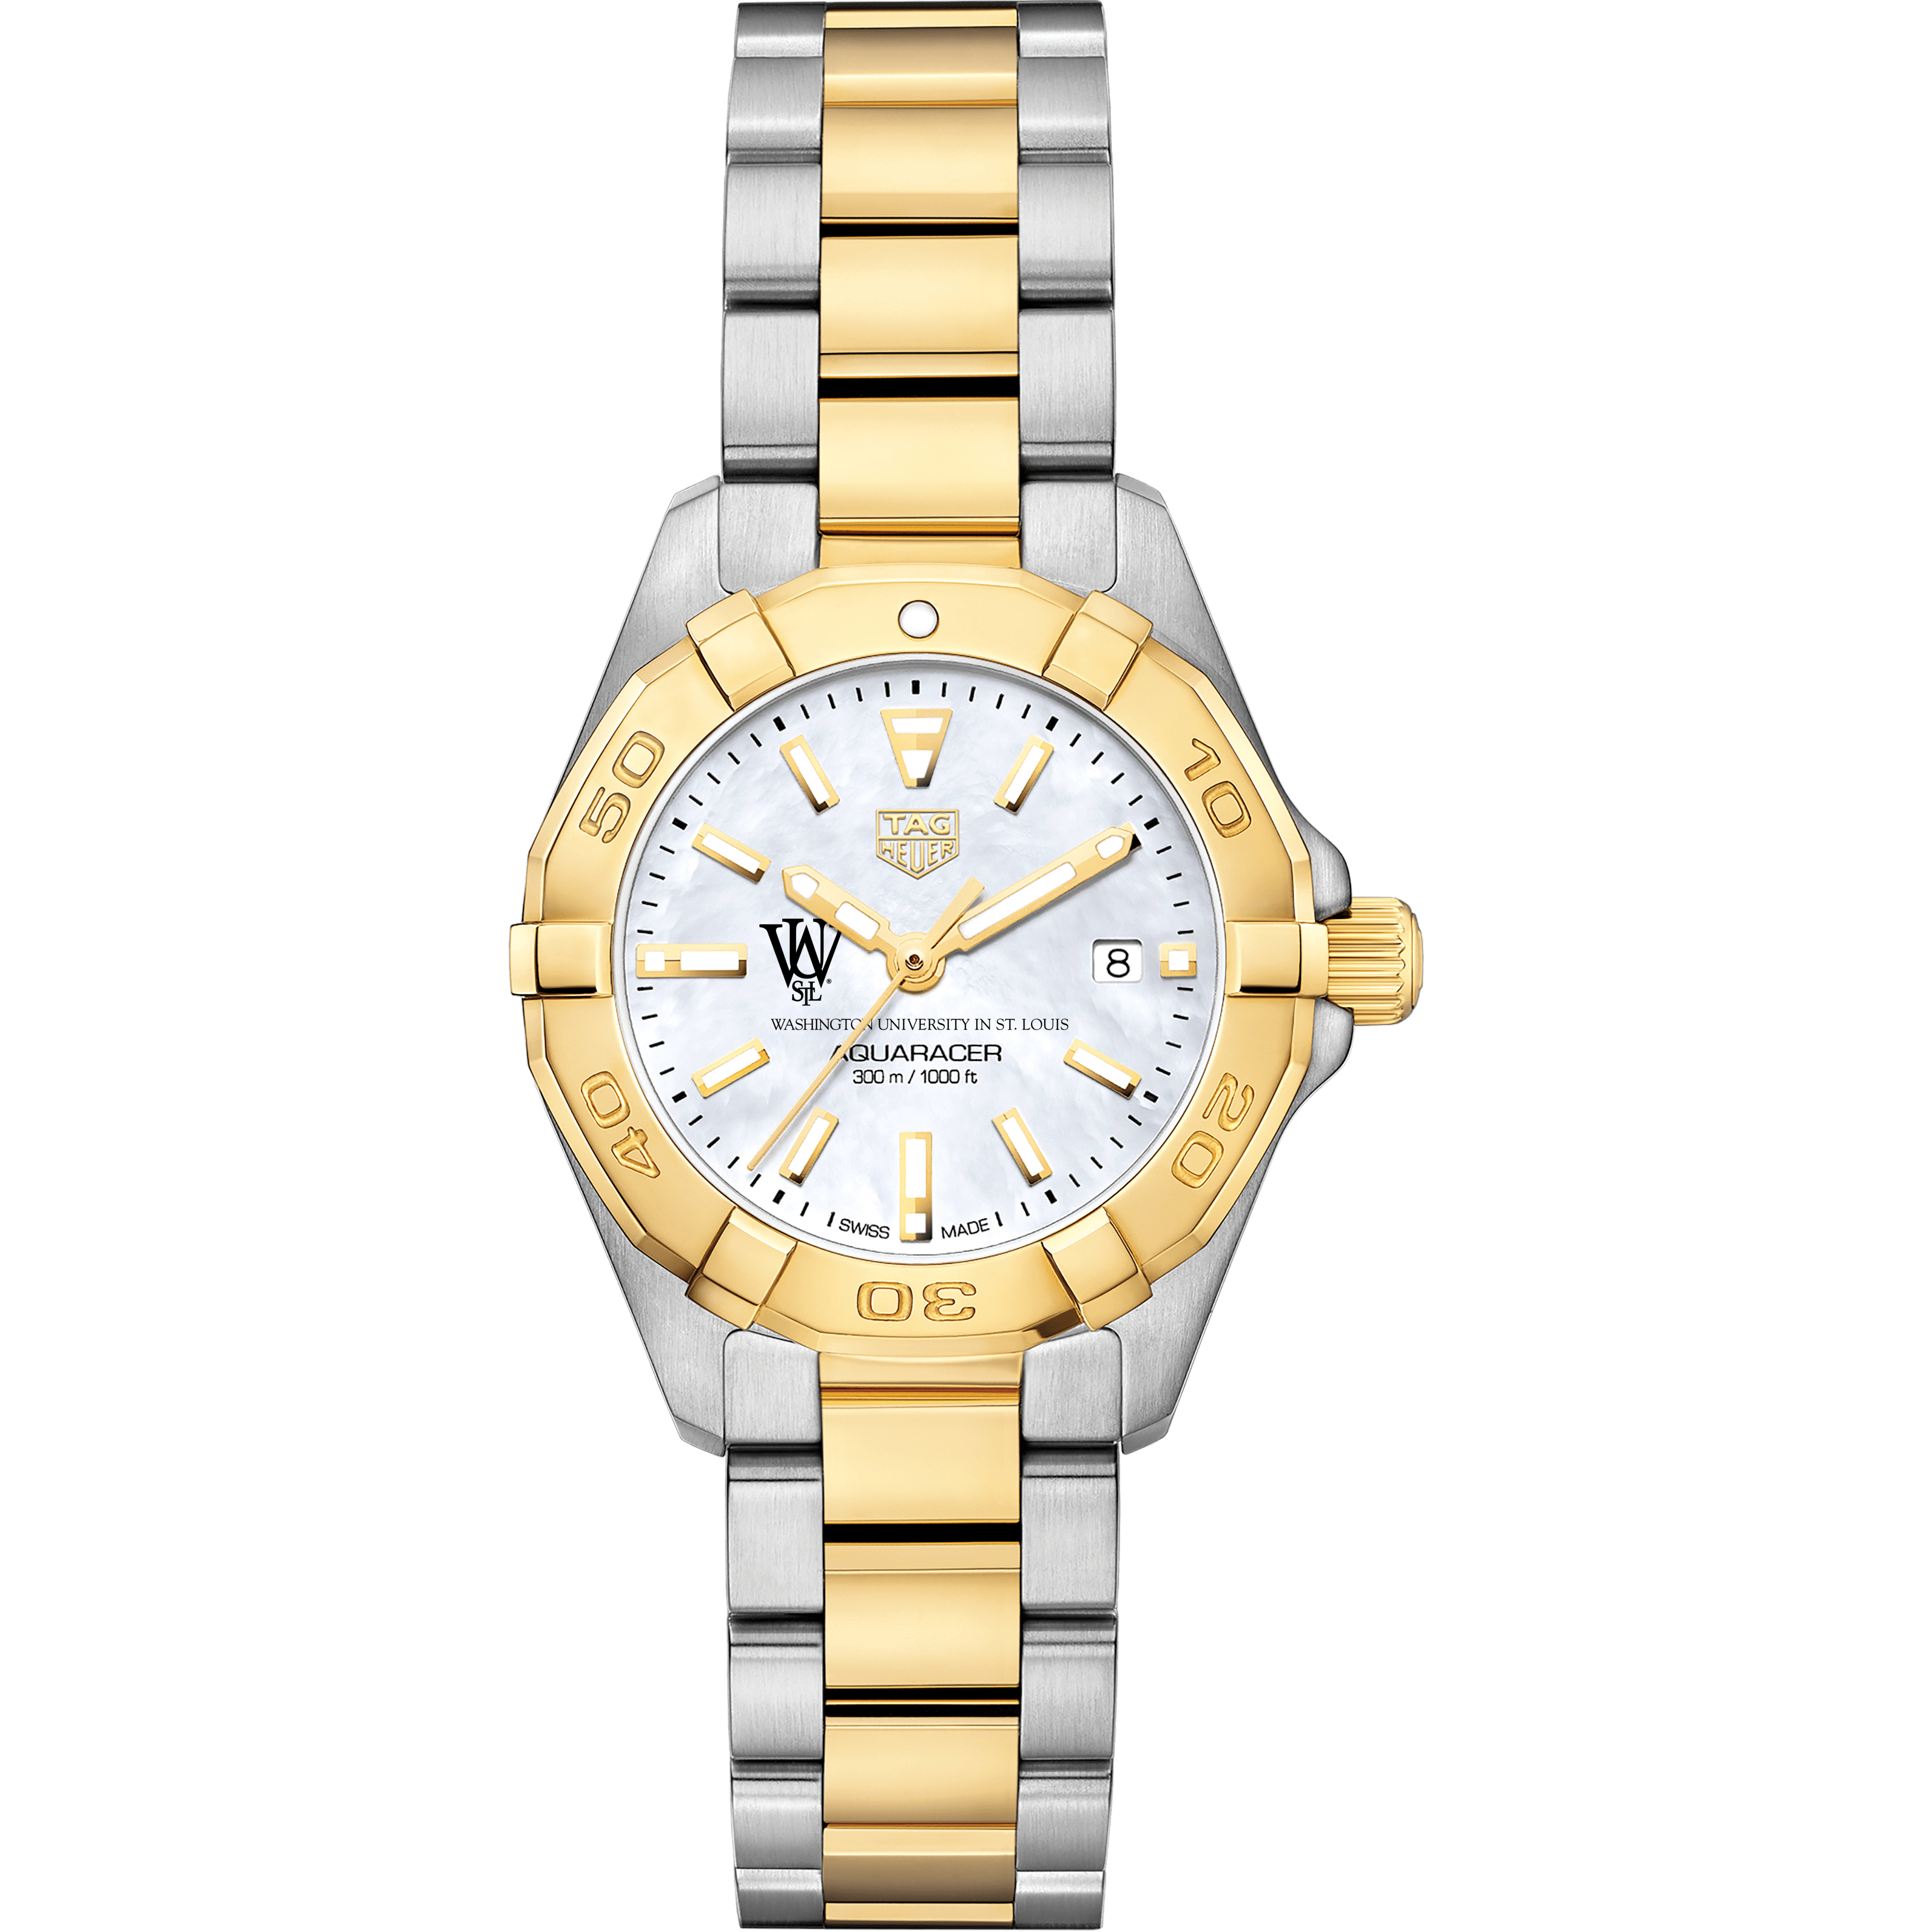 WUSTL TAG Heuer Two-Tone Aquaracer for Women - Image 2